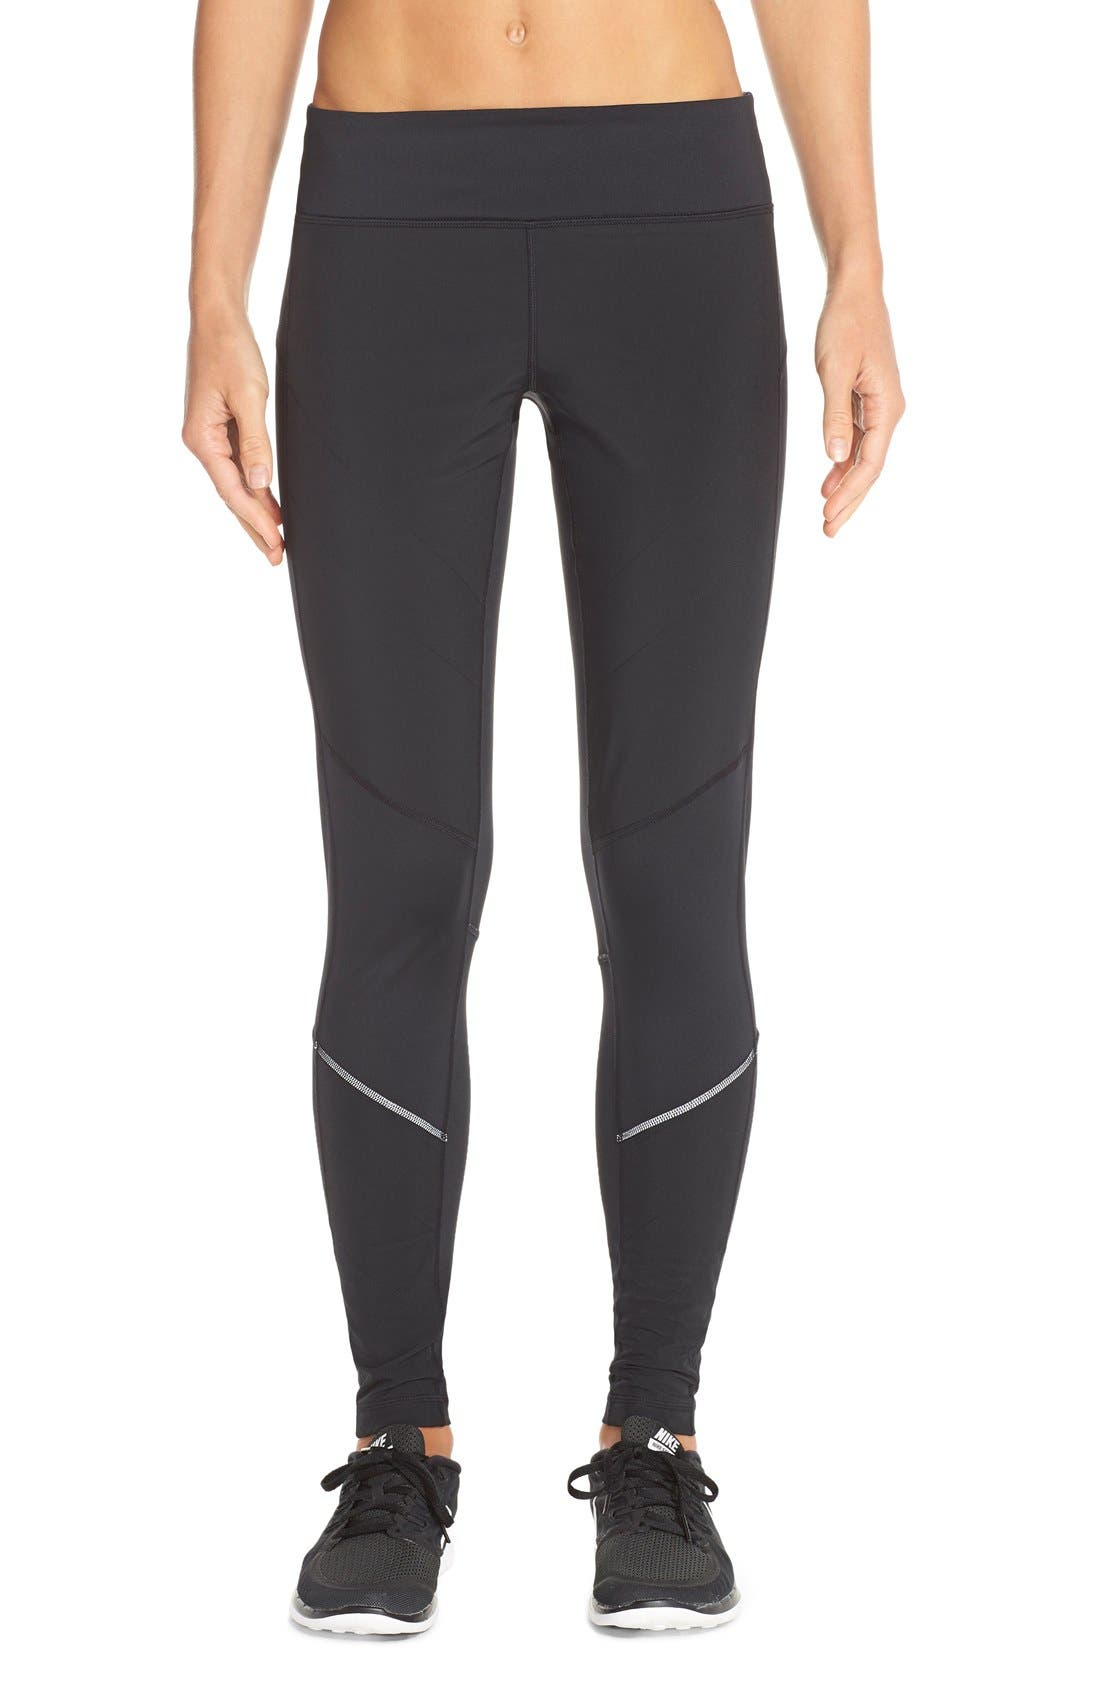 Alternate Image 1 Selected - Zella 'Chill Out' Running Tights